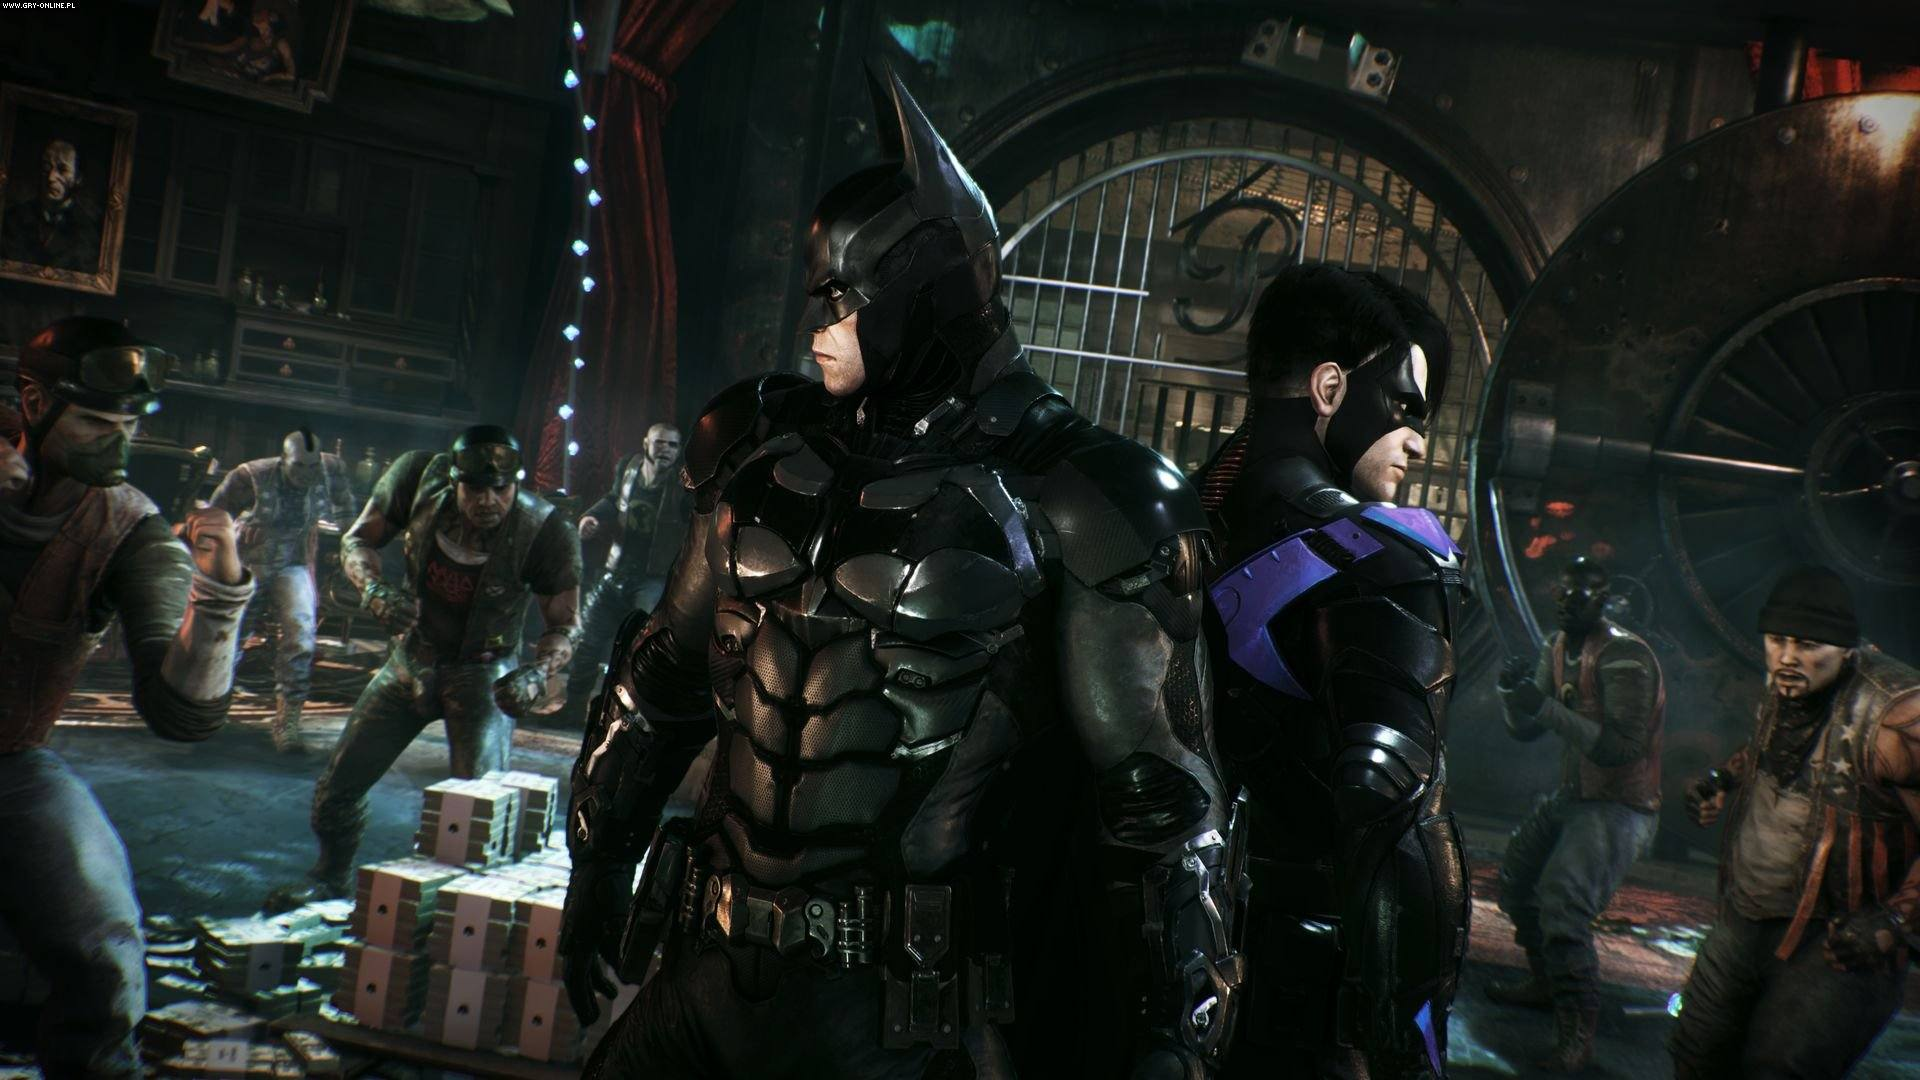 Batman Arkham Knight image #6